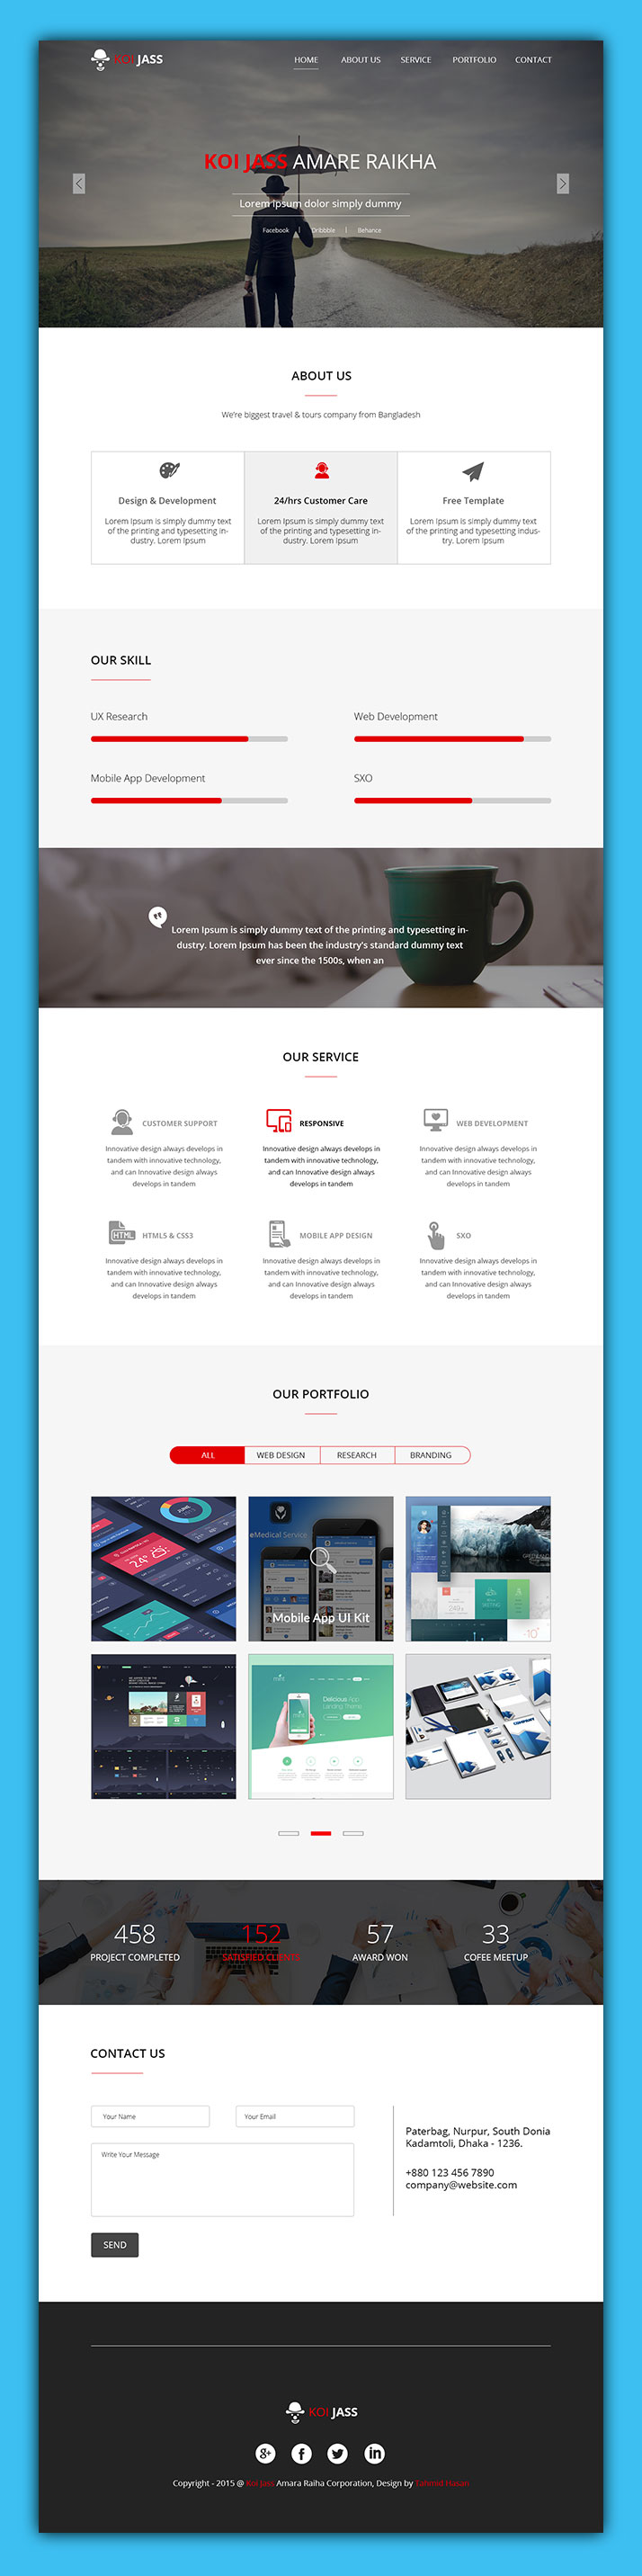 KOI JASS One Page PSD Template FREE PSD : http://www.72pxdesigns.com ...